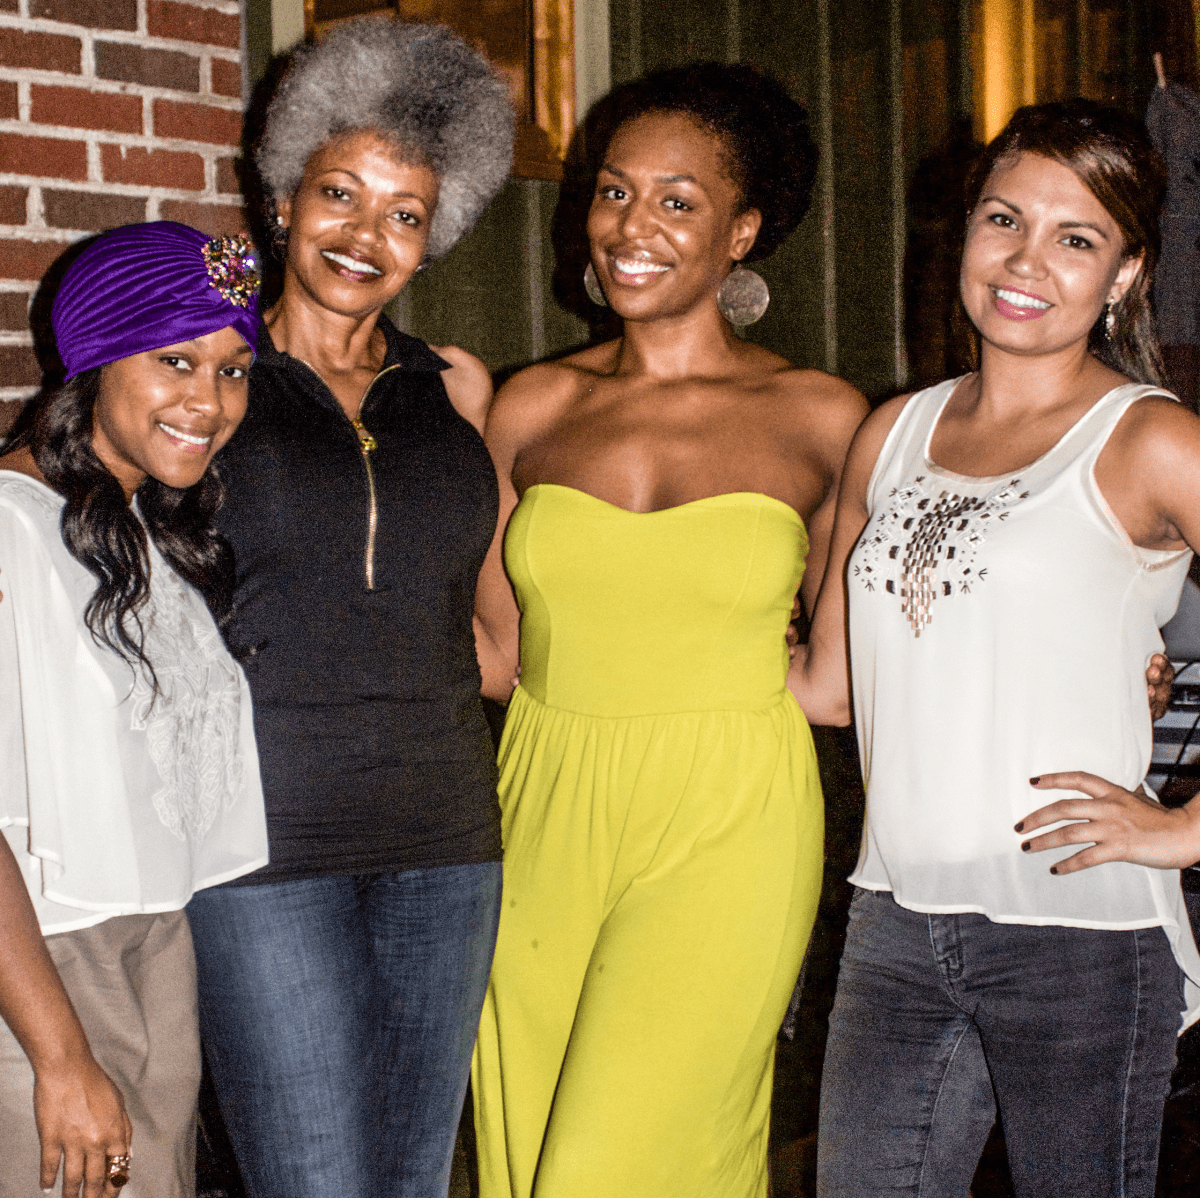 Stacy Davis, Toloria Allen, Danielle Perkins, Erica Debose at Oil Digger Tees launch party at Ruggles Green